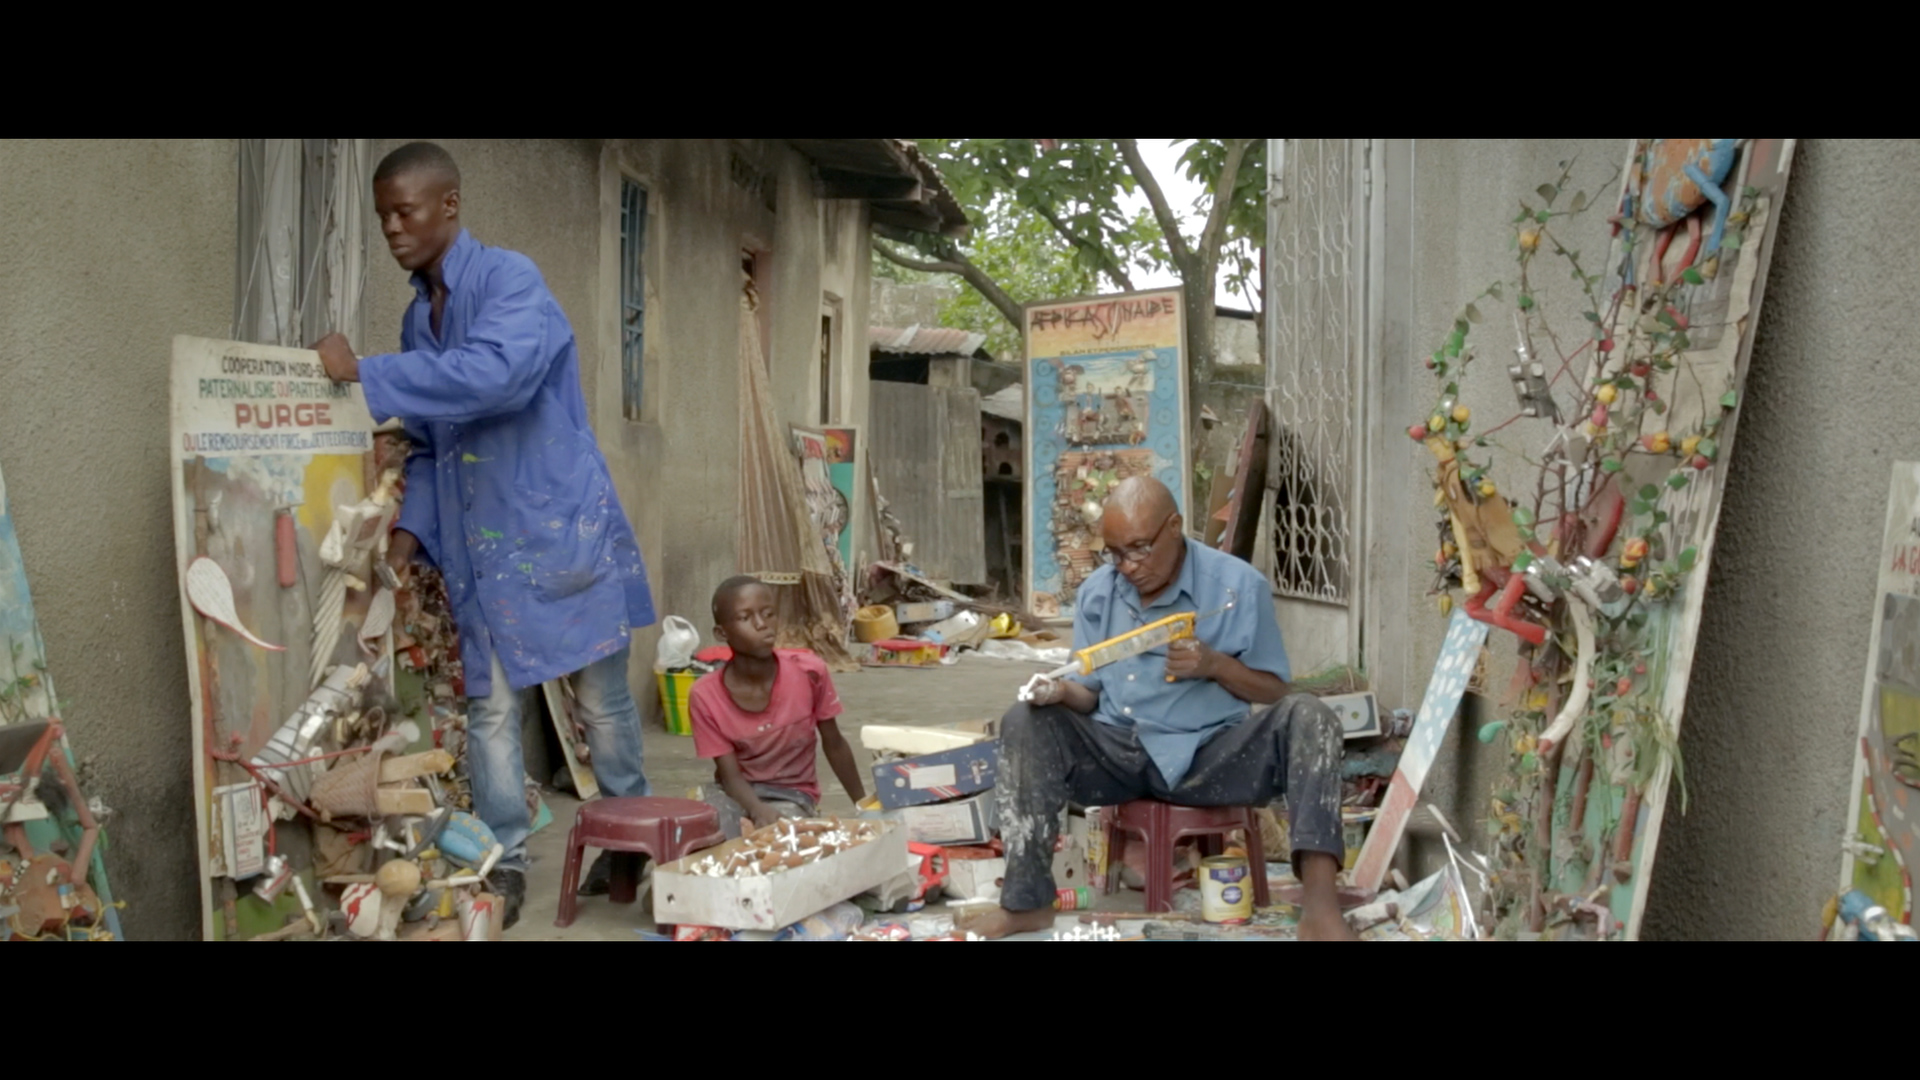 Sunday 10/21 | 3PM - Le Ministre des Poubelles (The Minister of Garbage)Dir. Quentin NoirfalisseDocumentary, 2017, 75 min.